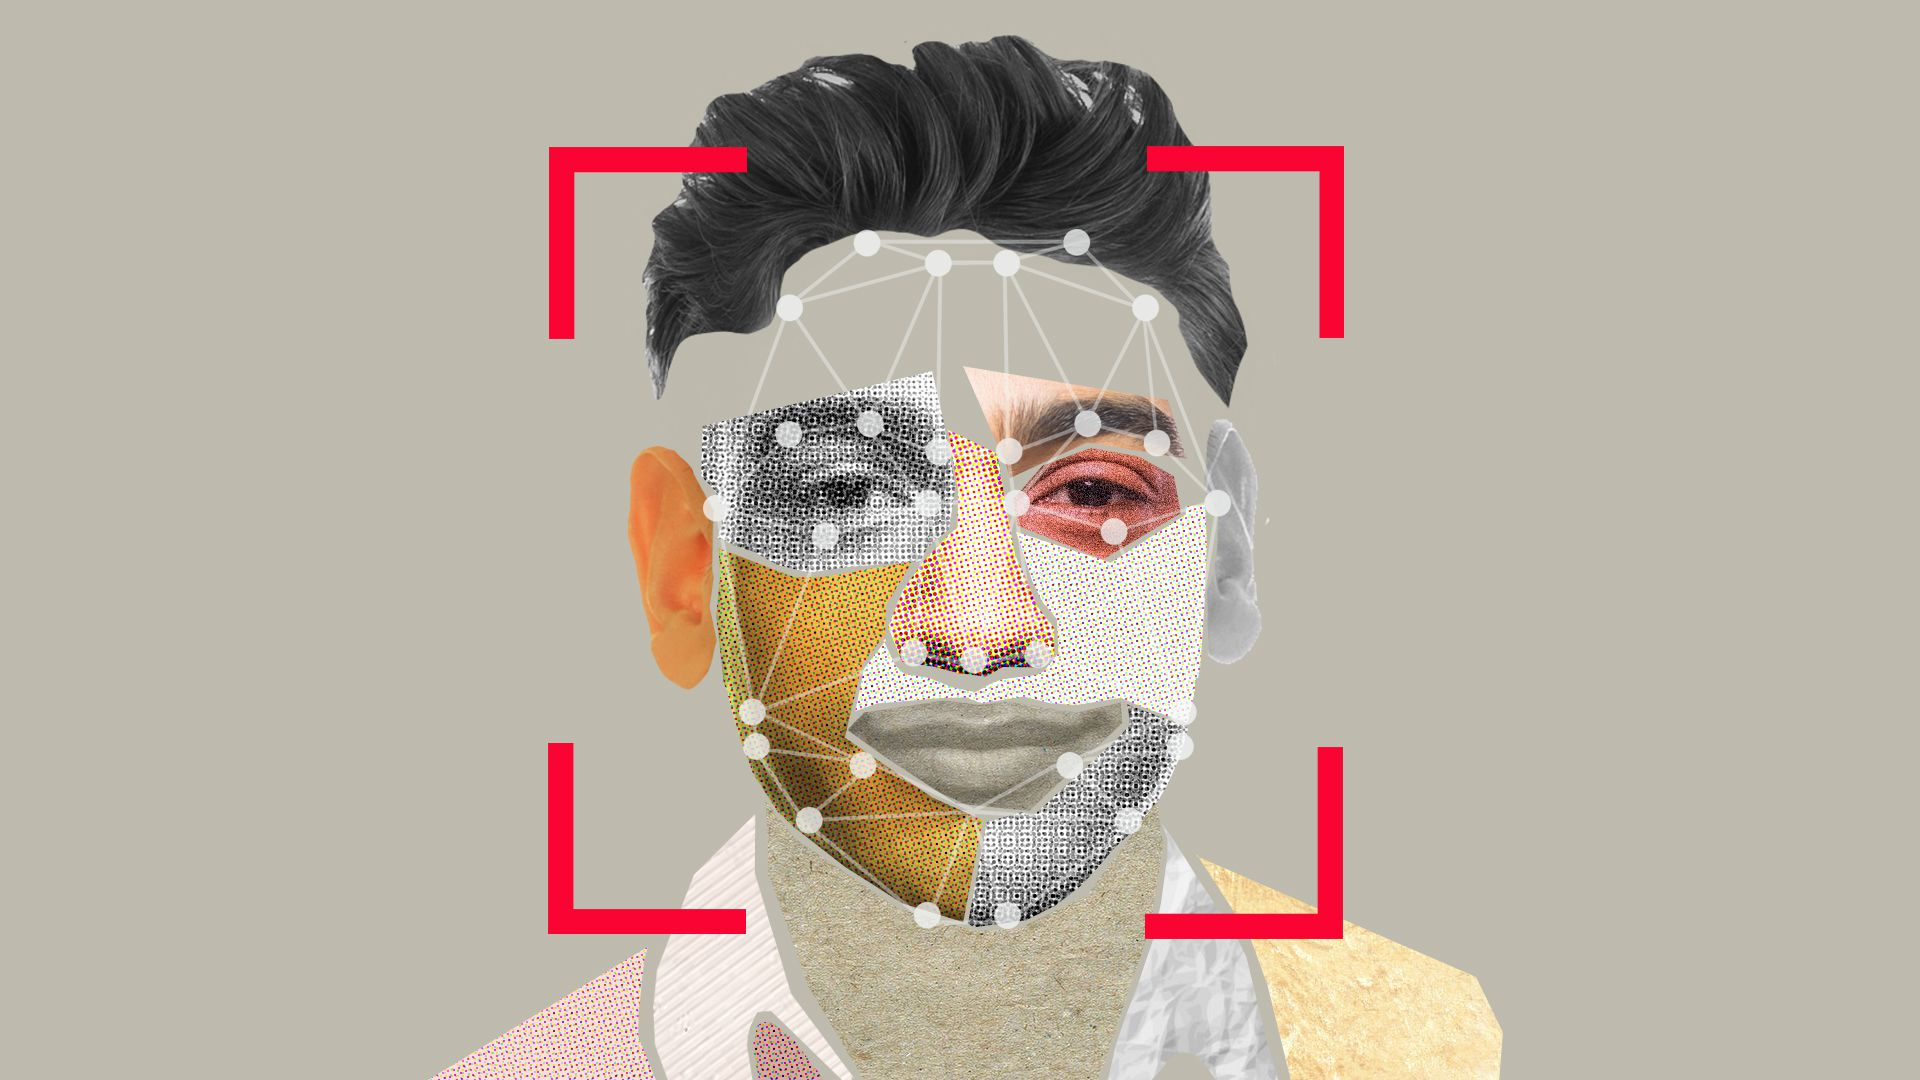 In this illustration, a man's face is pixellated and seen through the lens of a camera